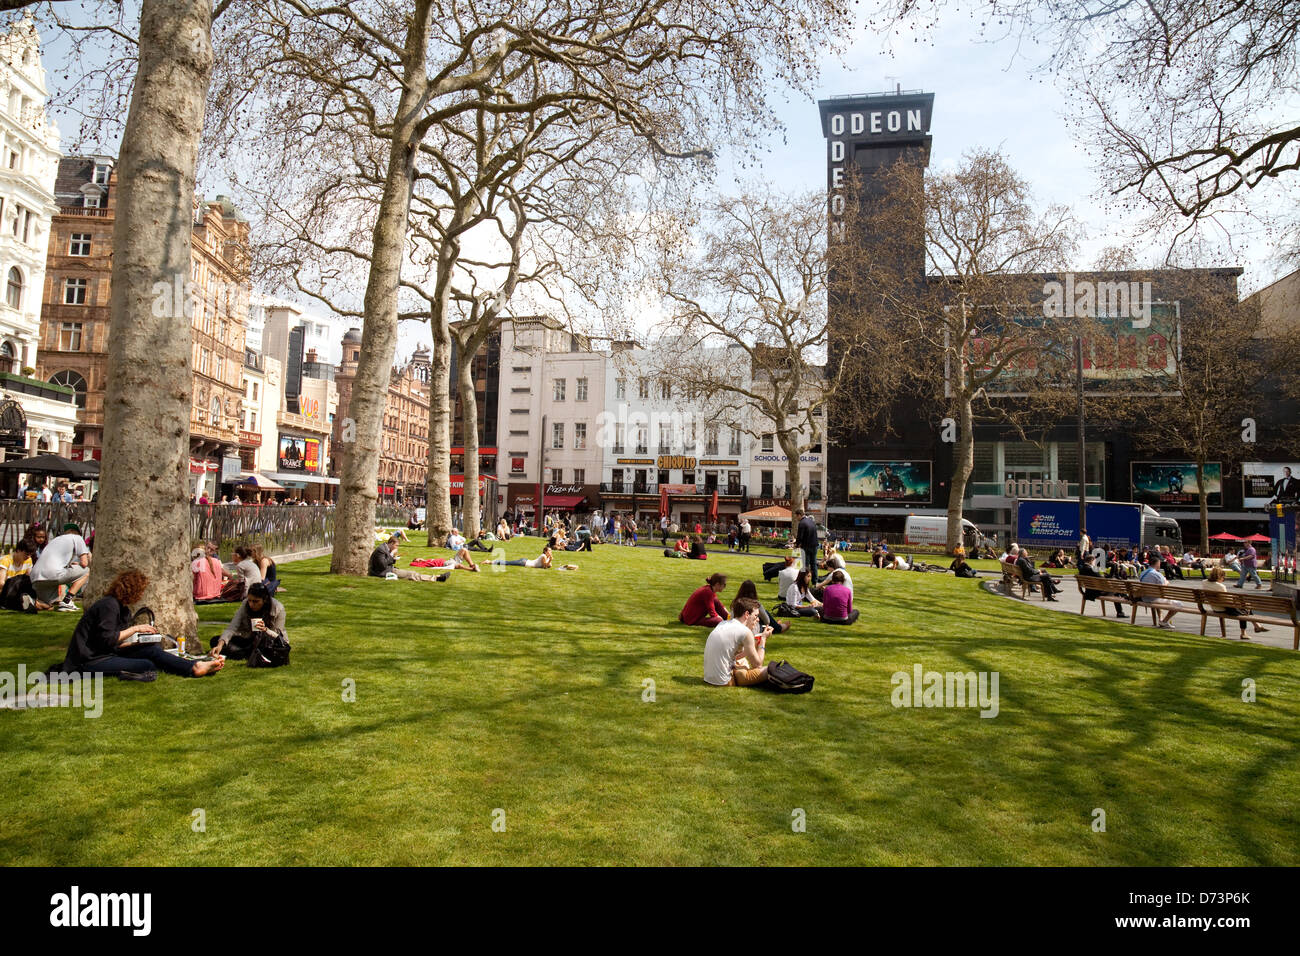 People sitting on the grass on a sunny day, Leicester Square Central London WC2, UK - Stock Image